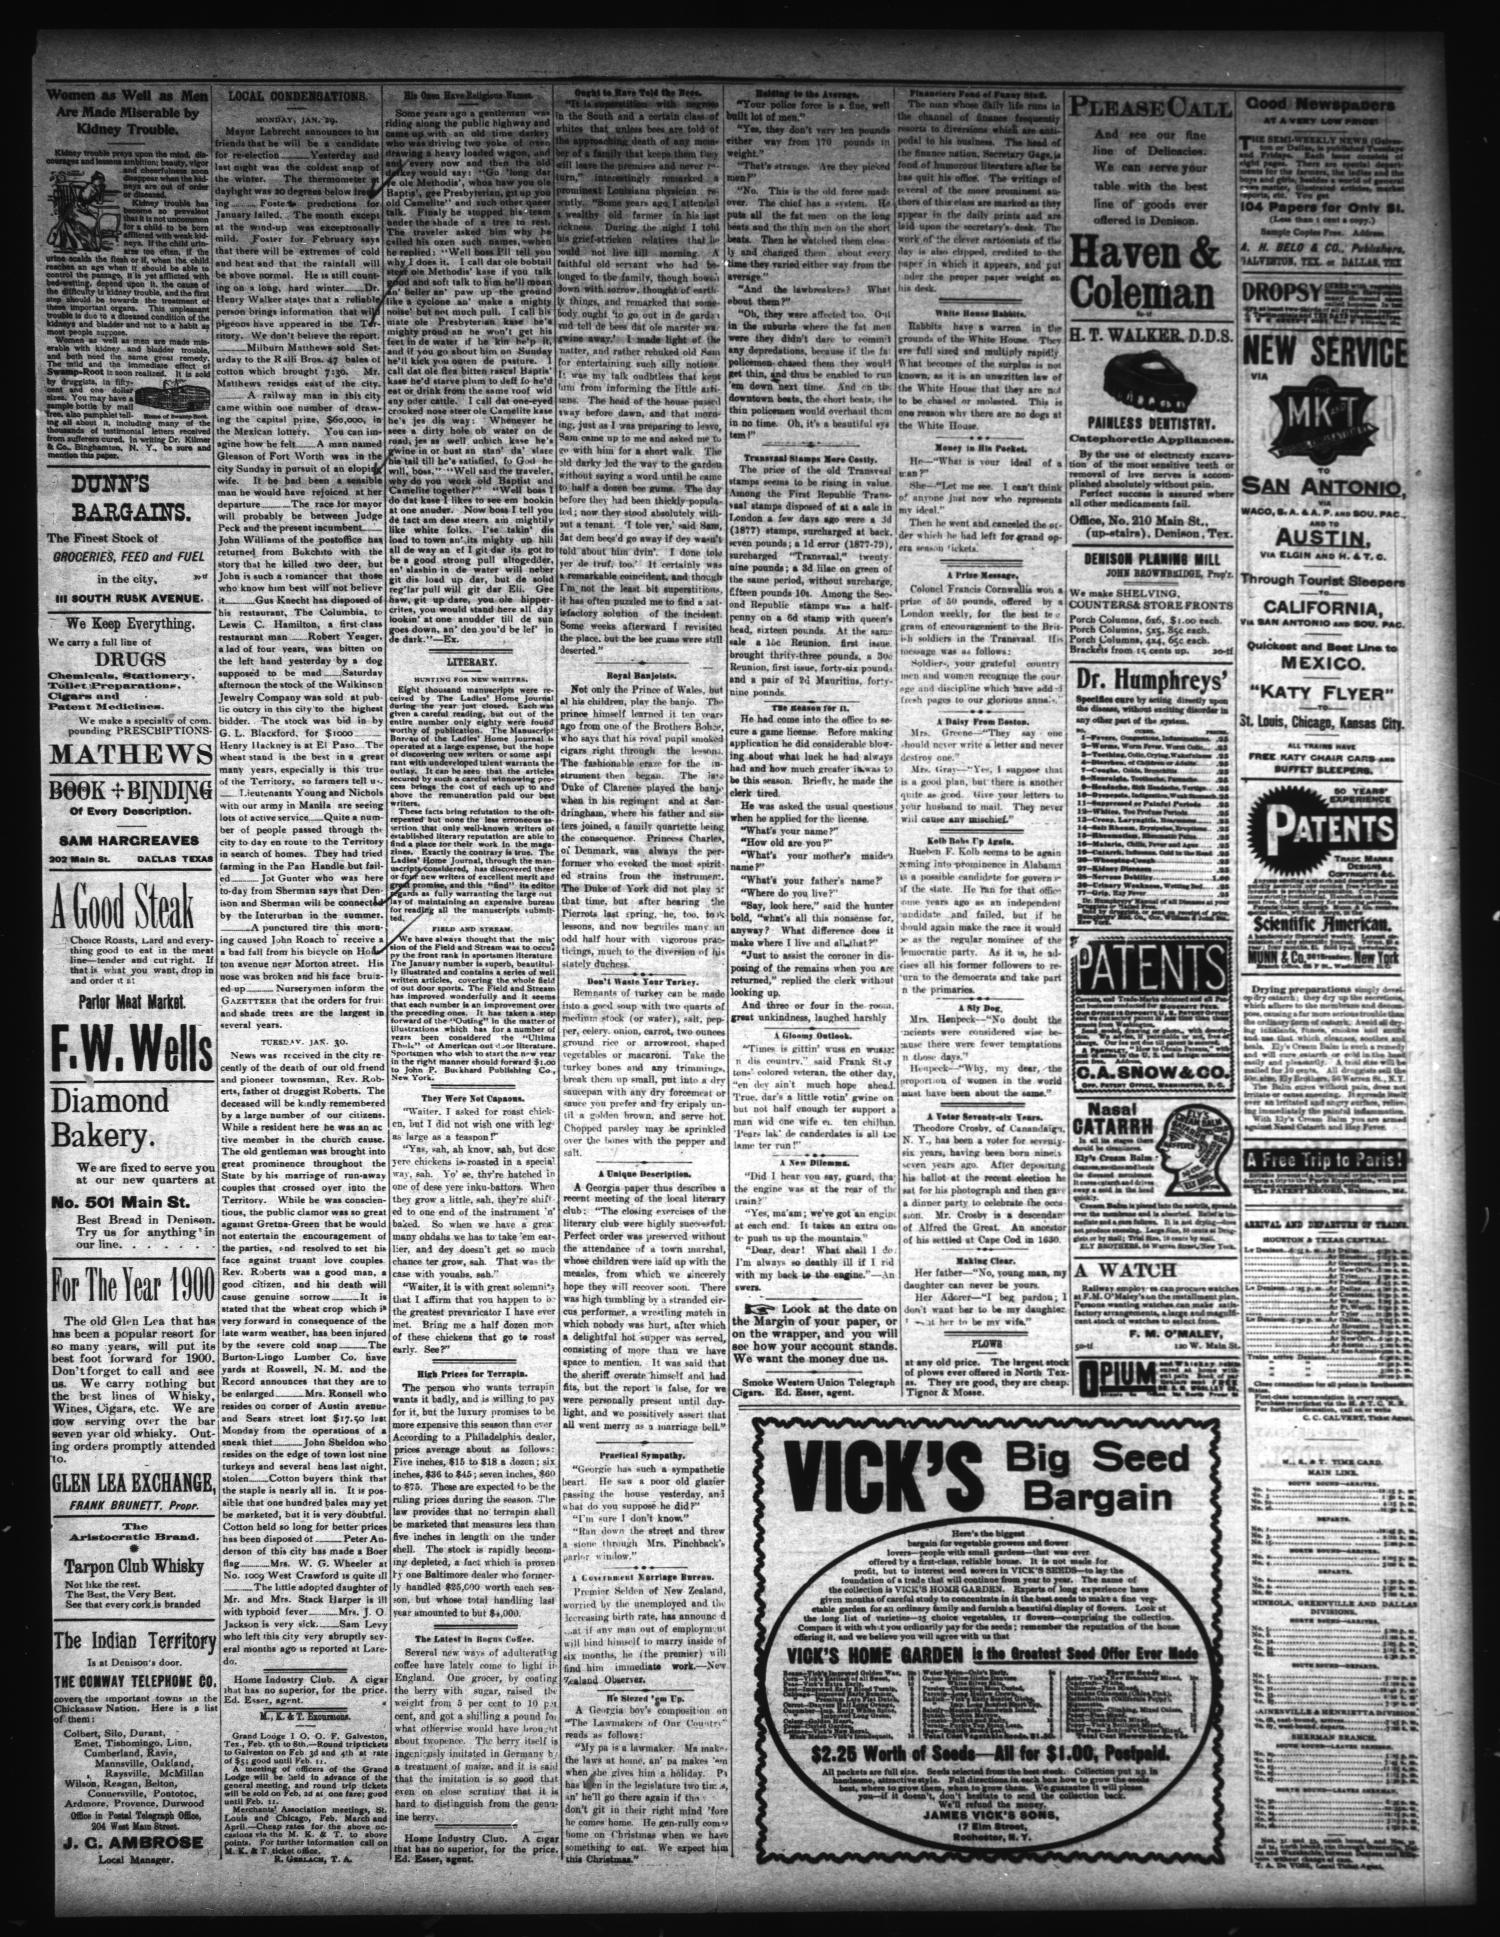 the sunday gazetteer denison tex vol 18 no 42 ed 1 sunday february 4 1900 page 3 of 4 the portal to texas history